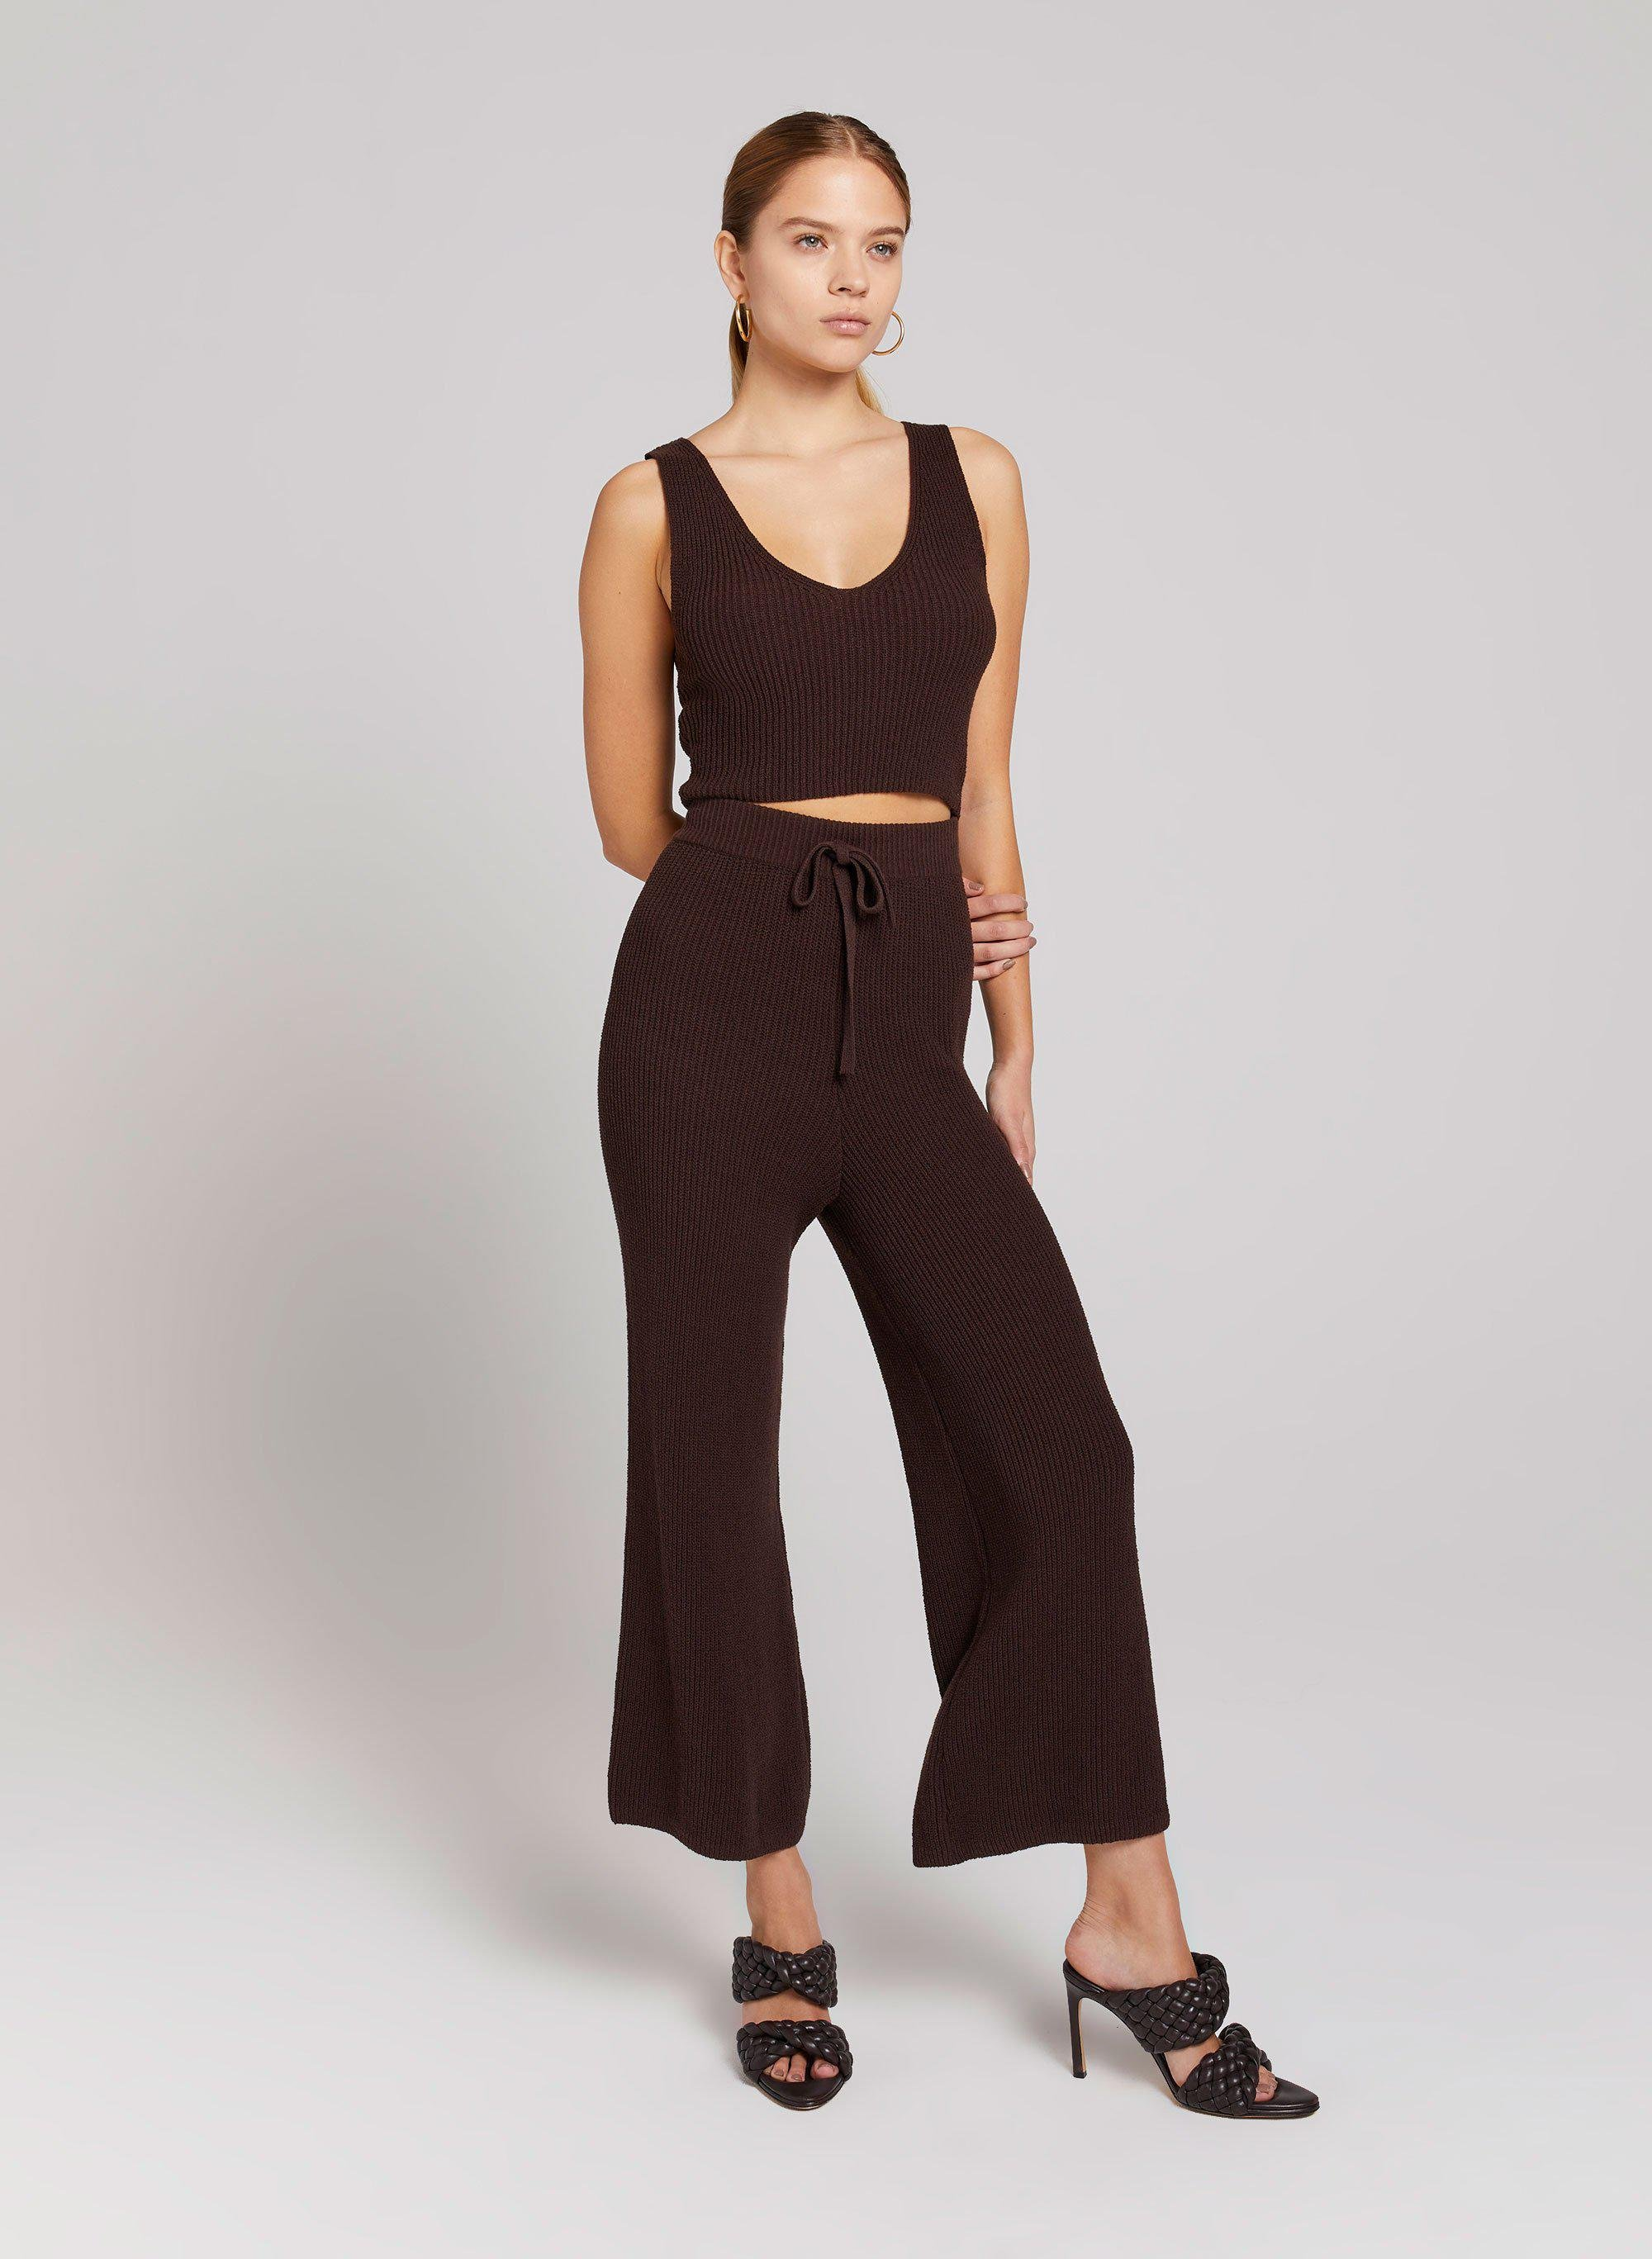 Martell Knit Pant 1